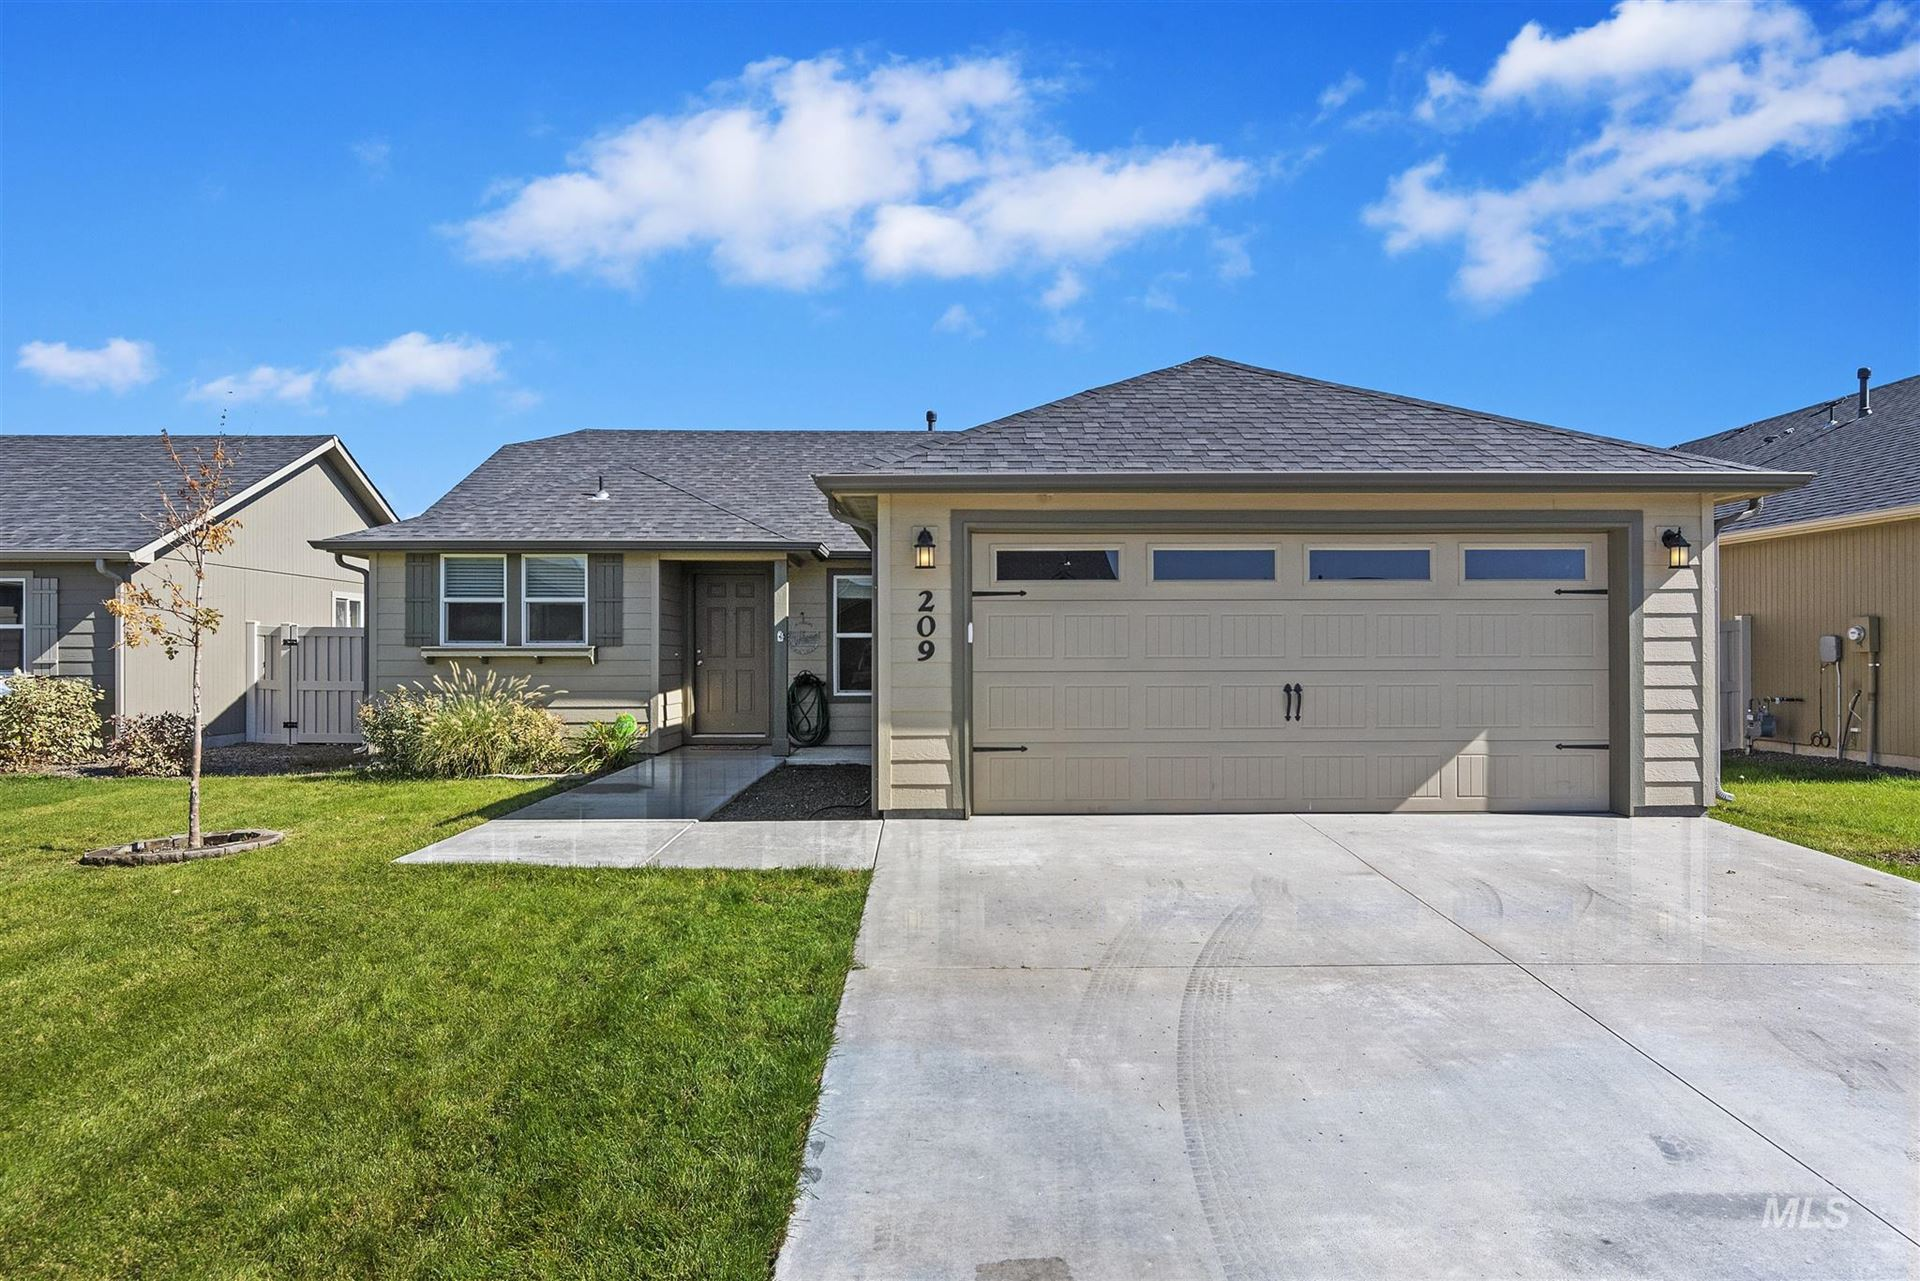 Photo of 209 S Voyage Ave, Caldwell, ID 83605 (MLS # 98806857)